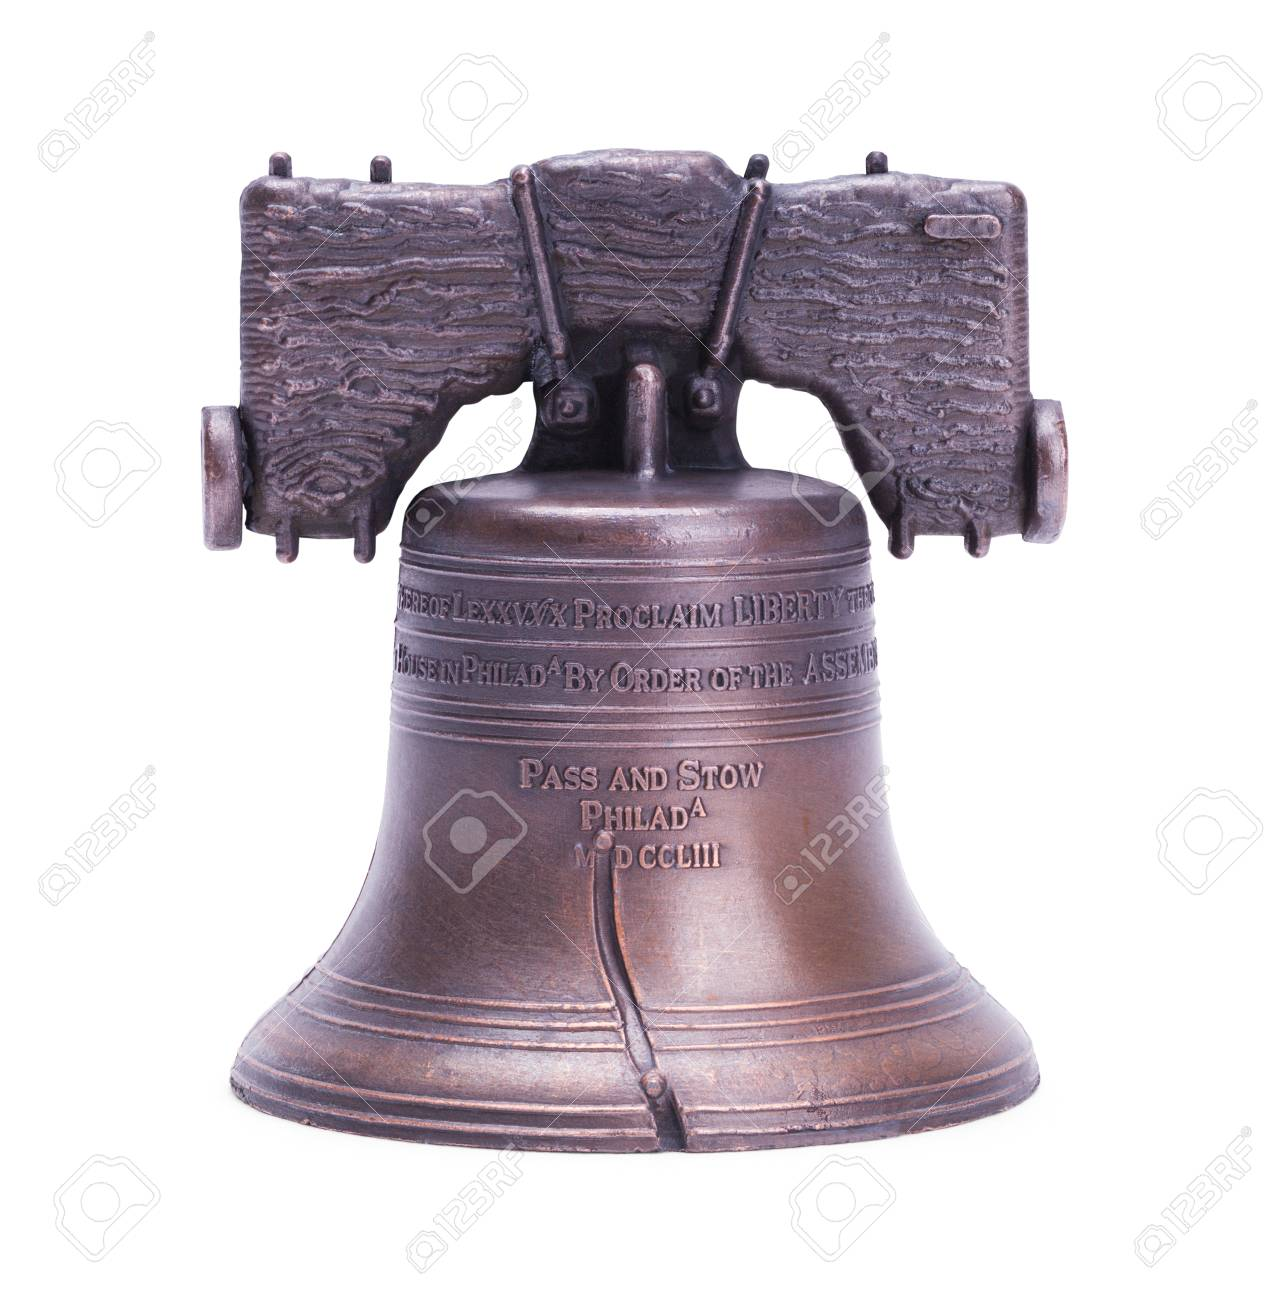 Liberty Bell Replica Cut Out on White. - 94248461